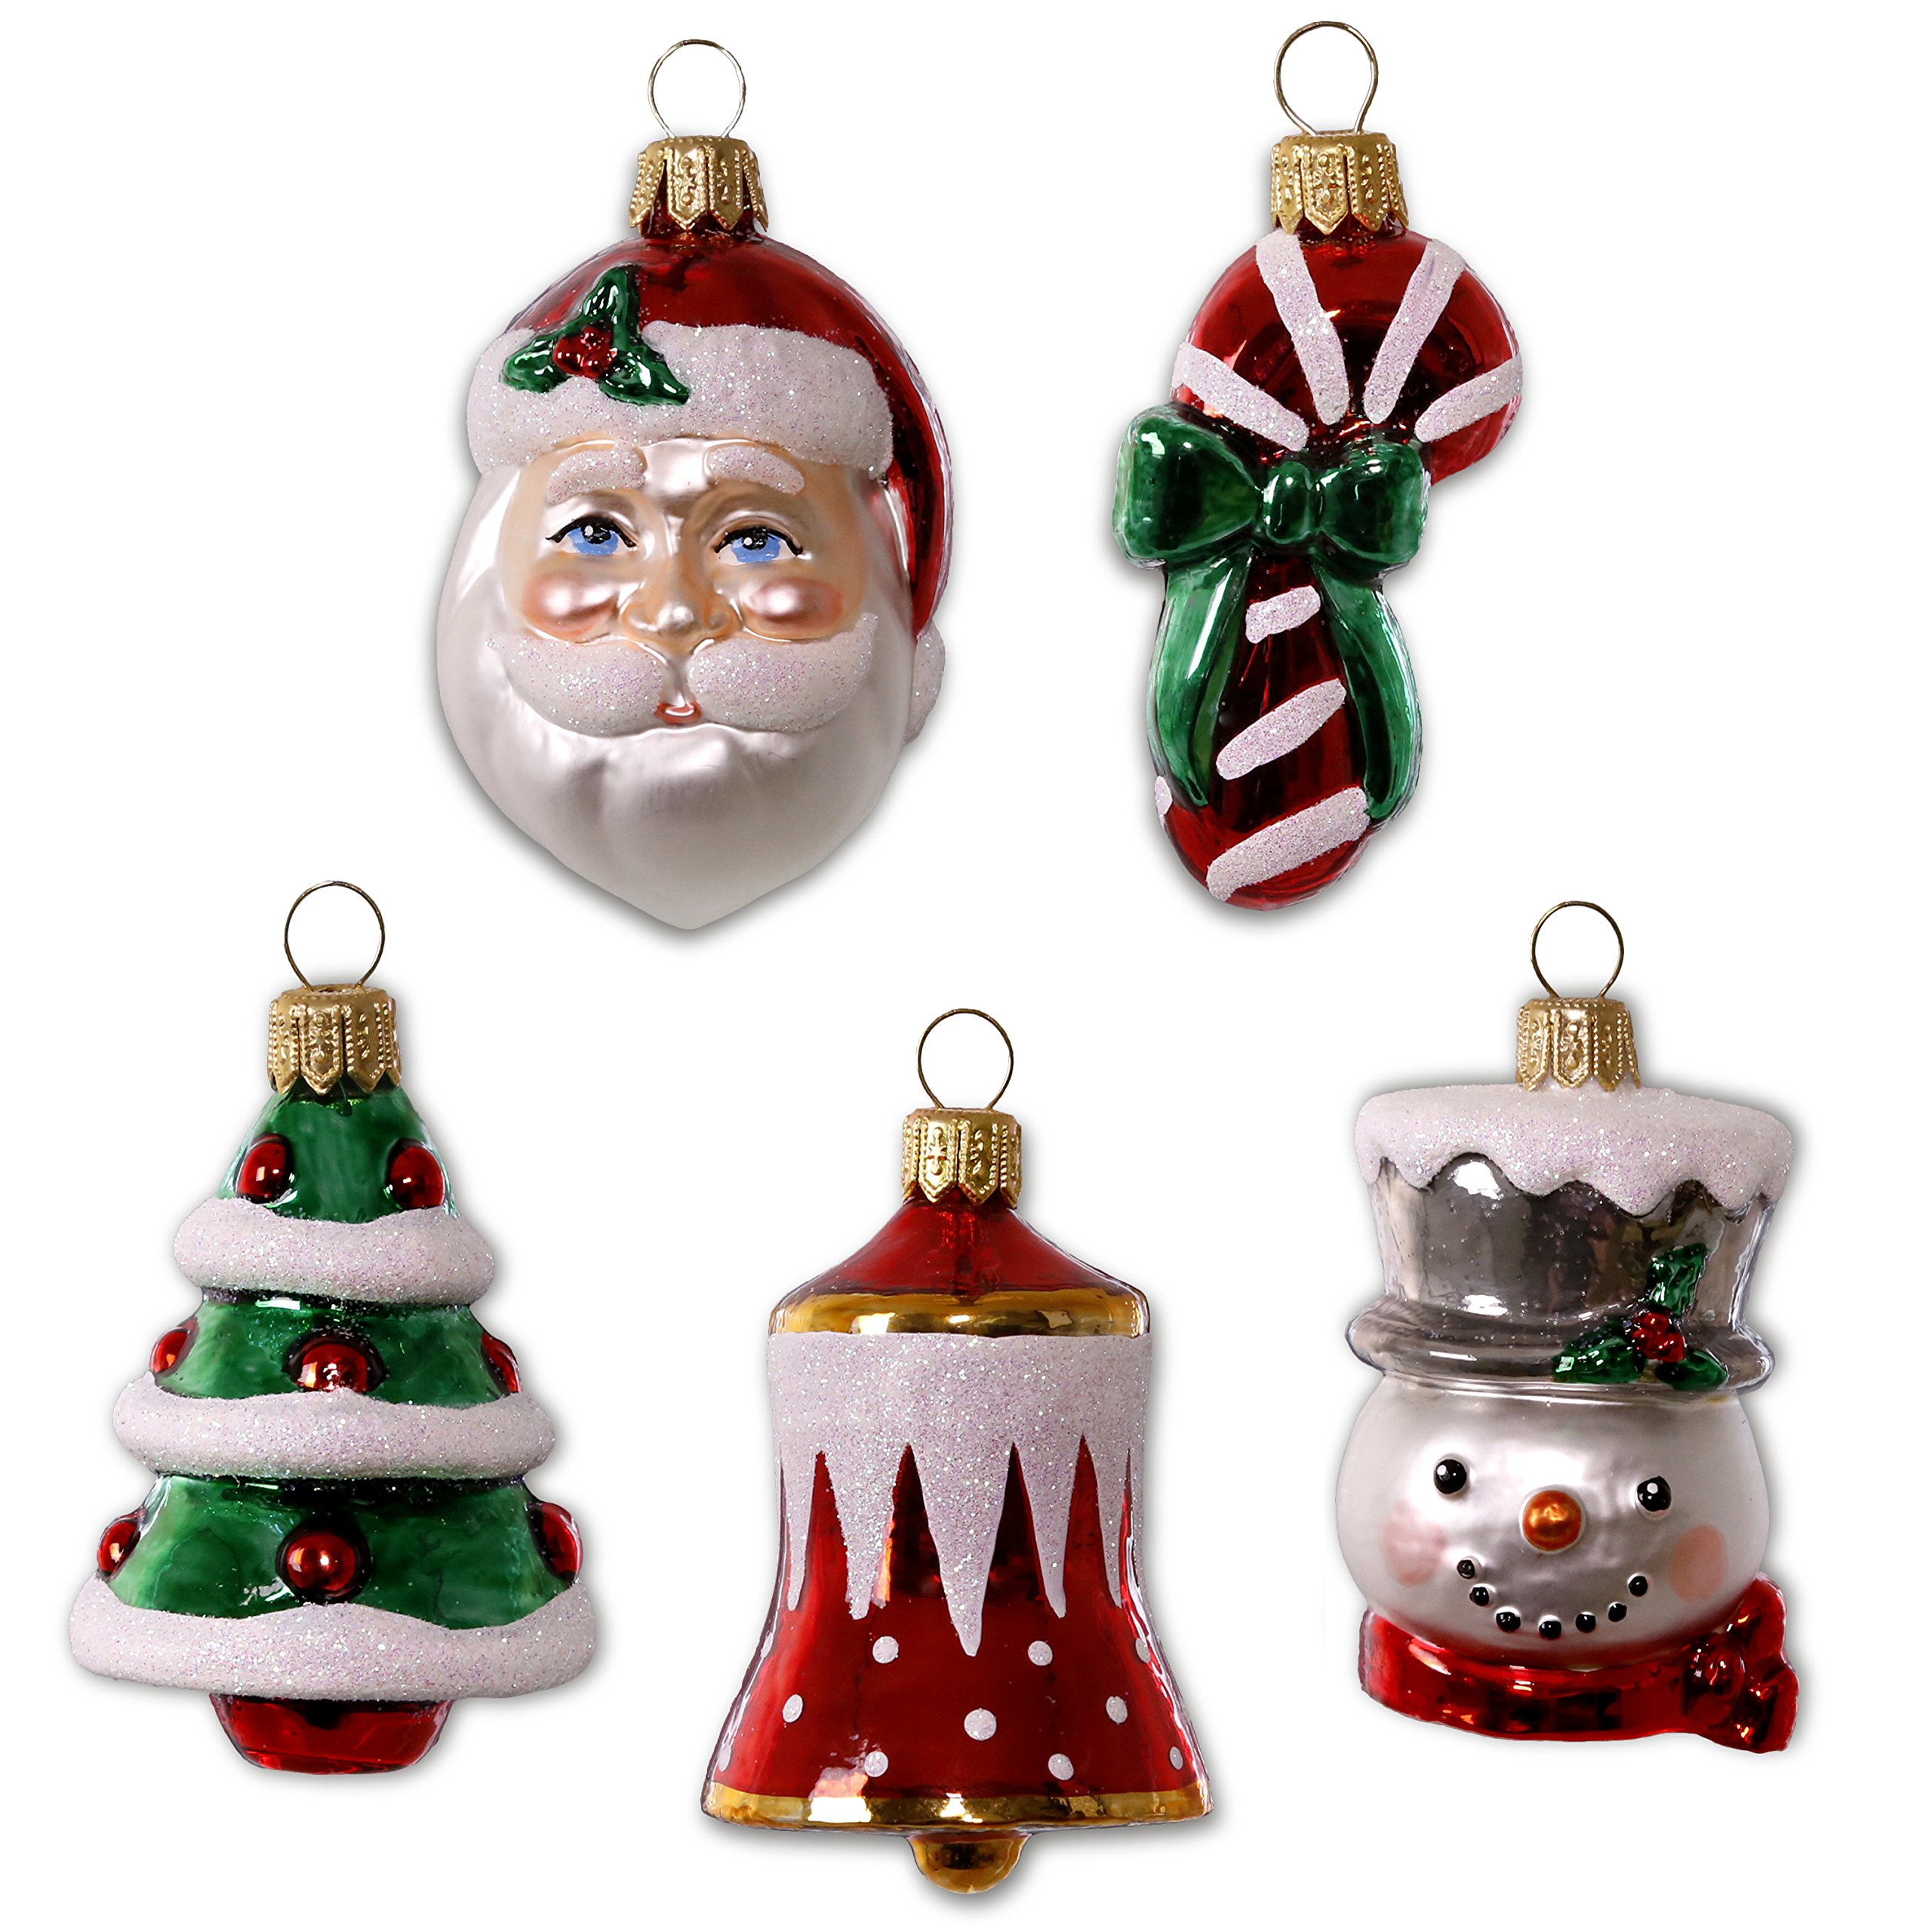 Hallmark Keepsake 2017 Symbols of the Season Premium Mini Blown Glass Christmas Ornaments, Set of 5